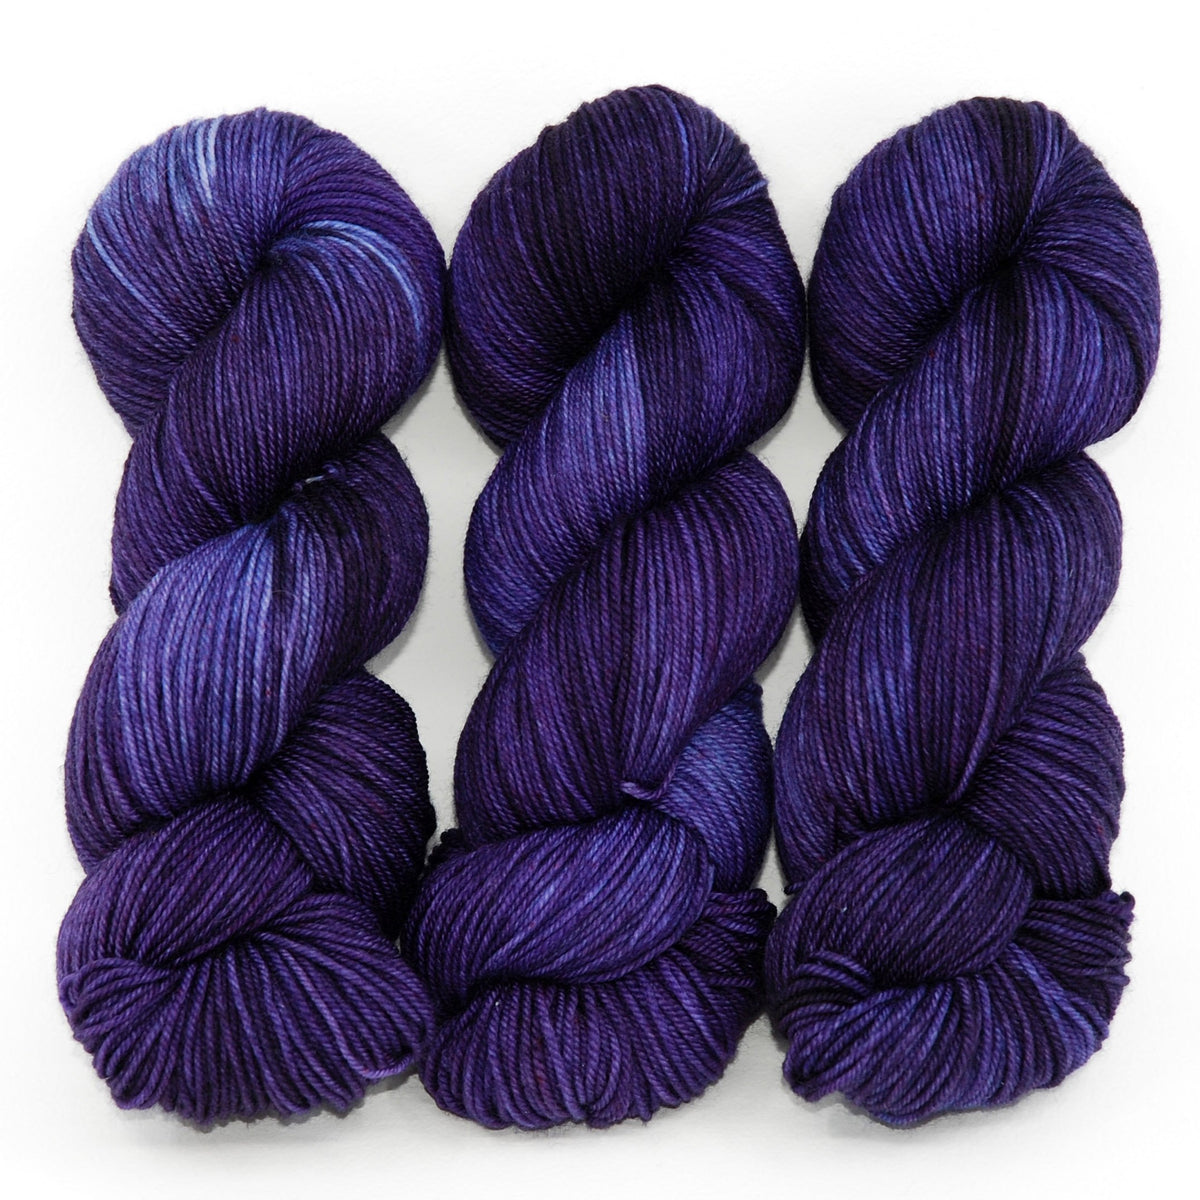 Amethyst - Big Squeeze Bulky - Dyed Stock